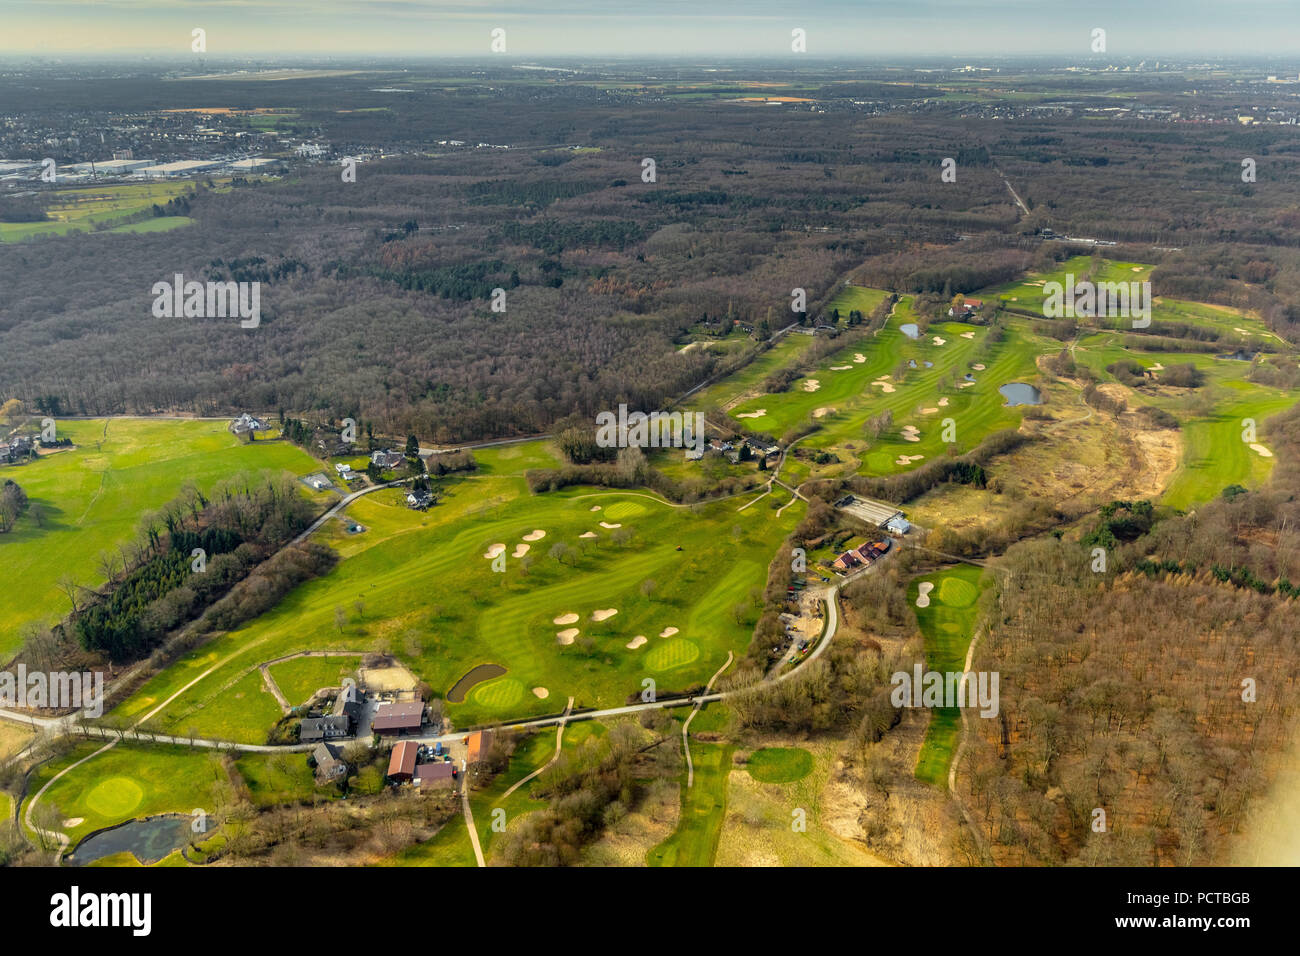 Golf club Mülheim an der Ruhr eV in the south near Selbeck, Mülheim an der Ruhr, Ruhr area, North Rhine-Westphalia, Germany - Stock Image